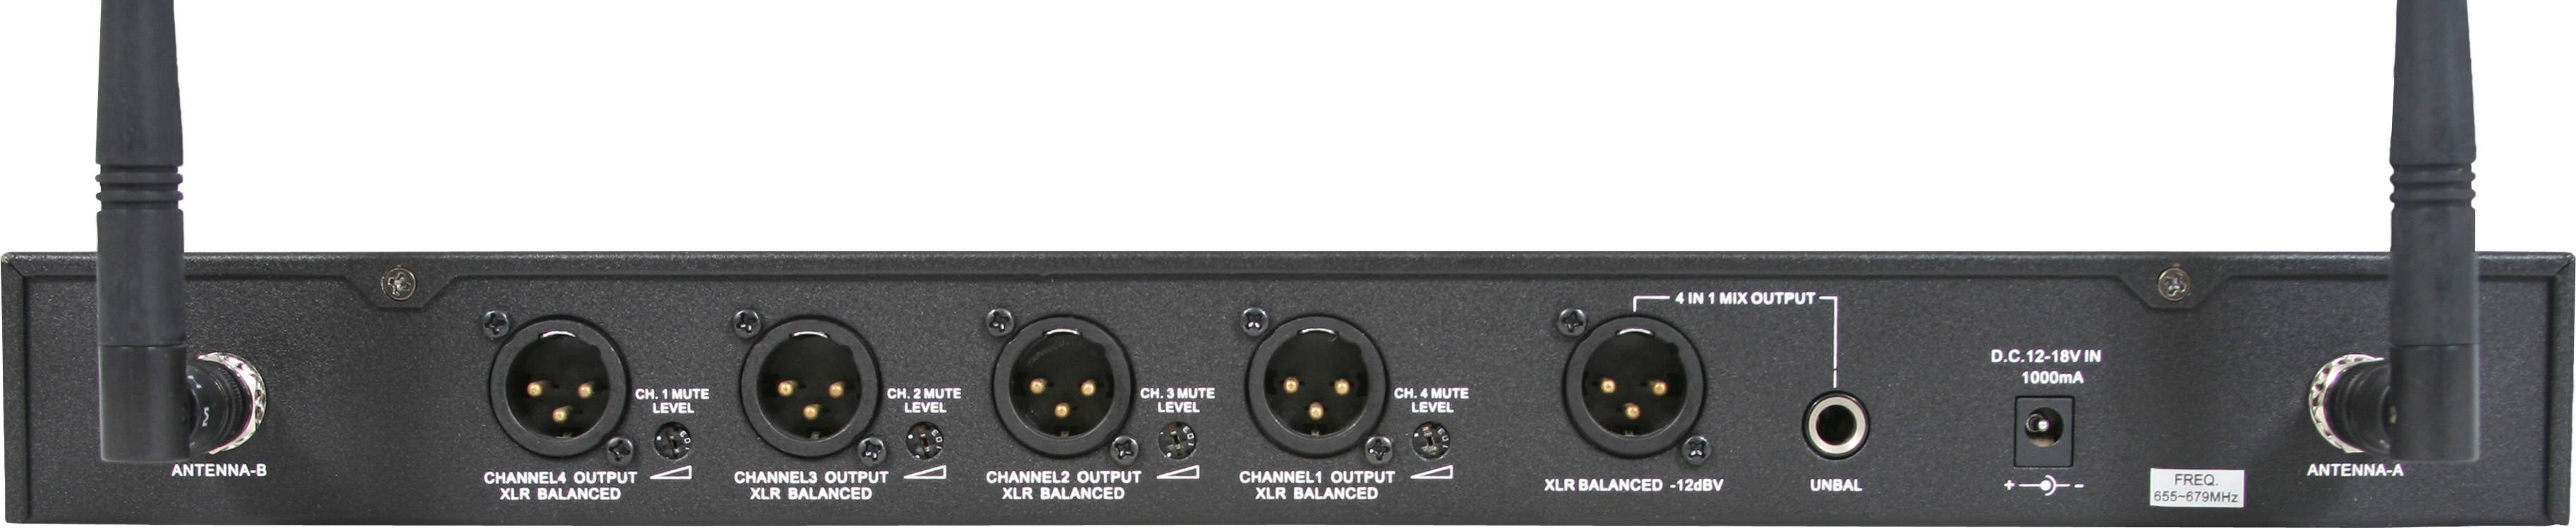 Four Channel Receiver